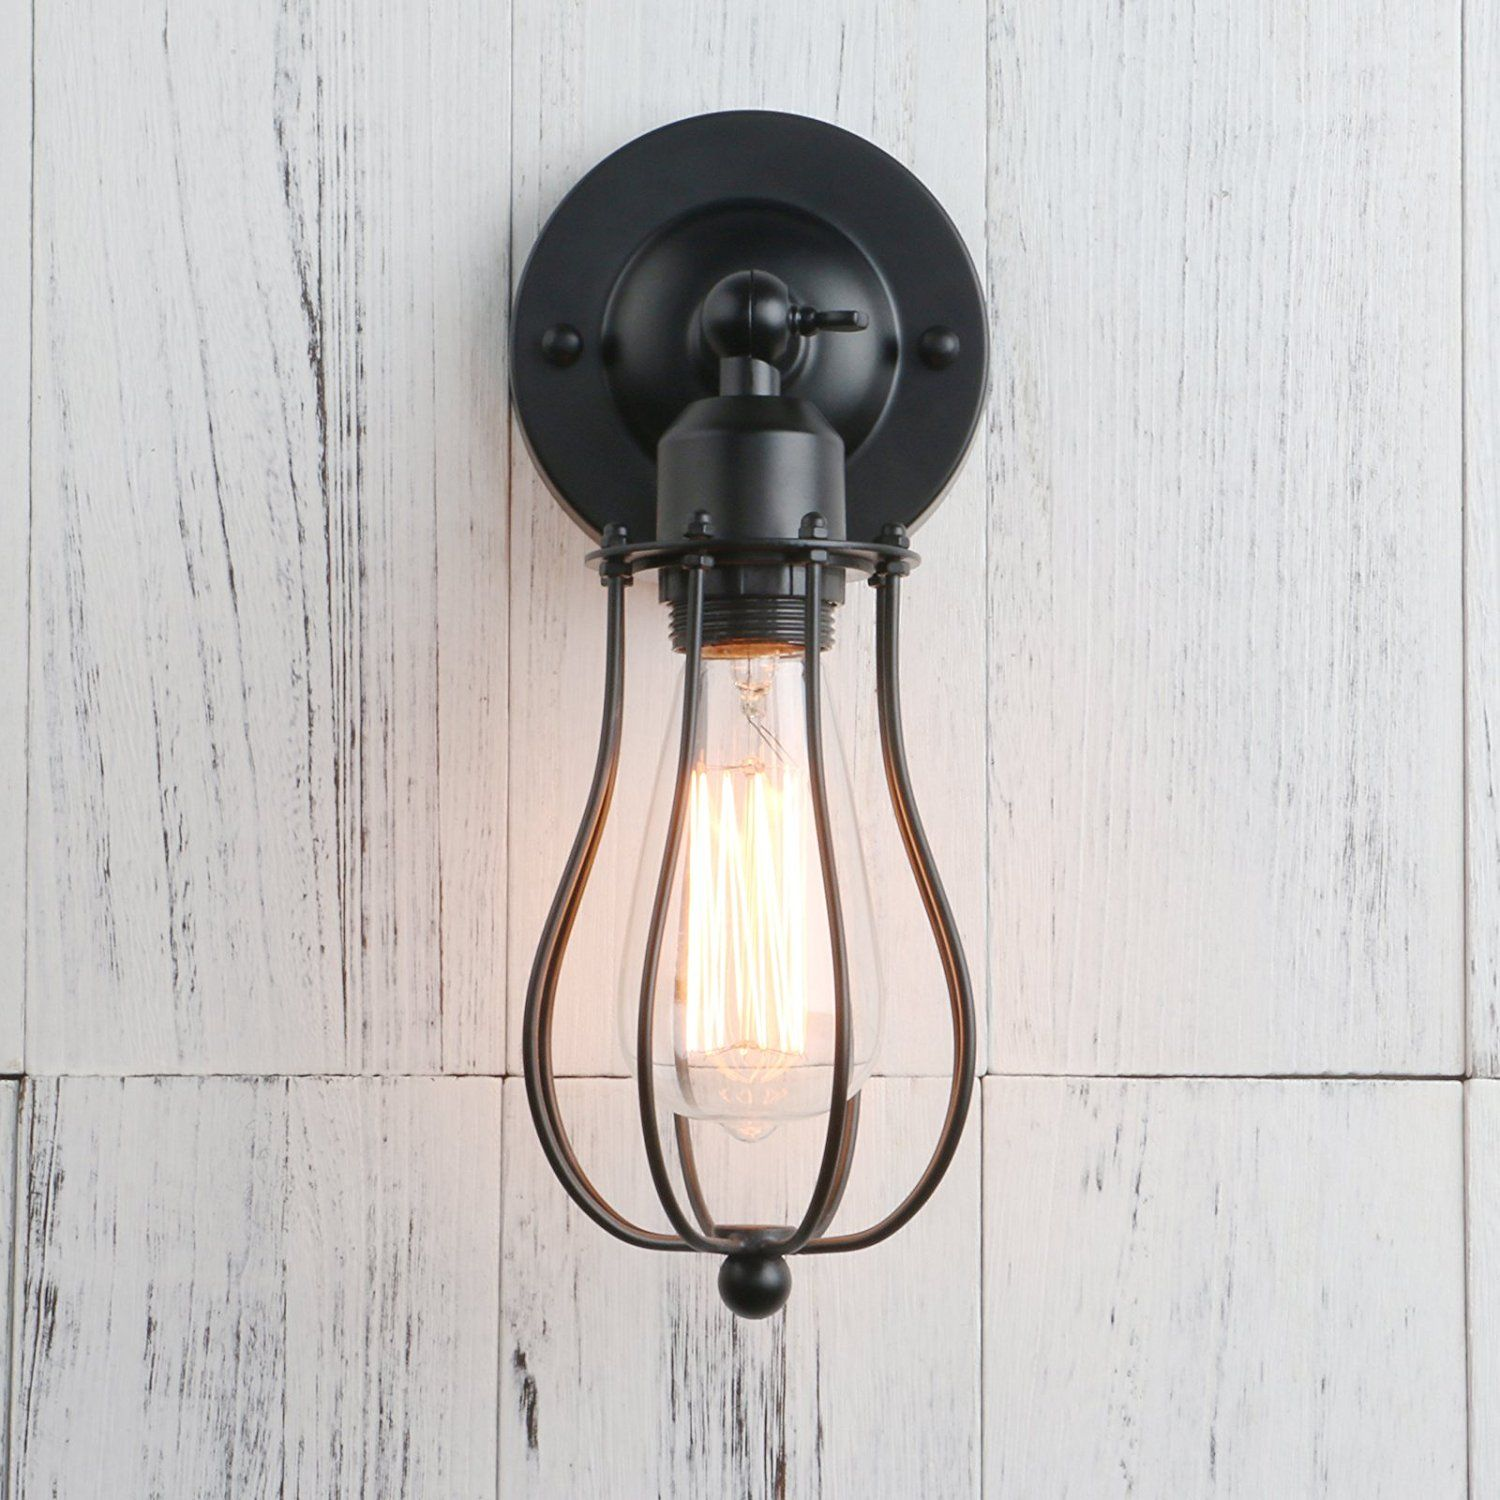 Permo Industrial Vintage Metal Wire Cage Wall Sconce Lighting Wiring A Ceiling Lamp Fixture Mount Light Black